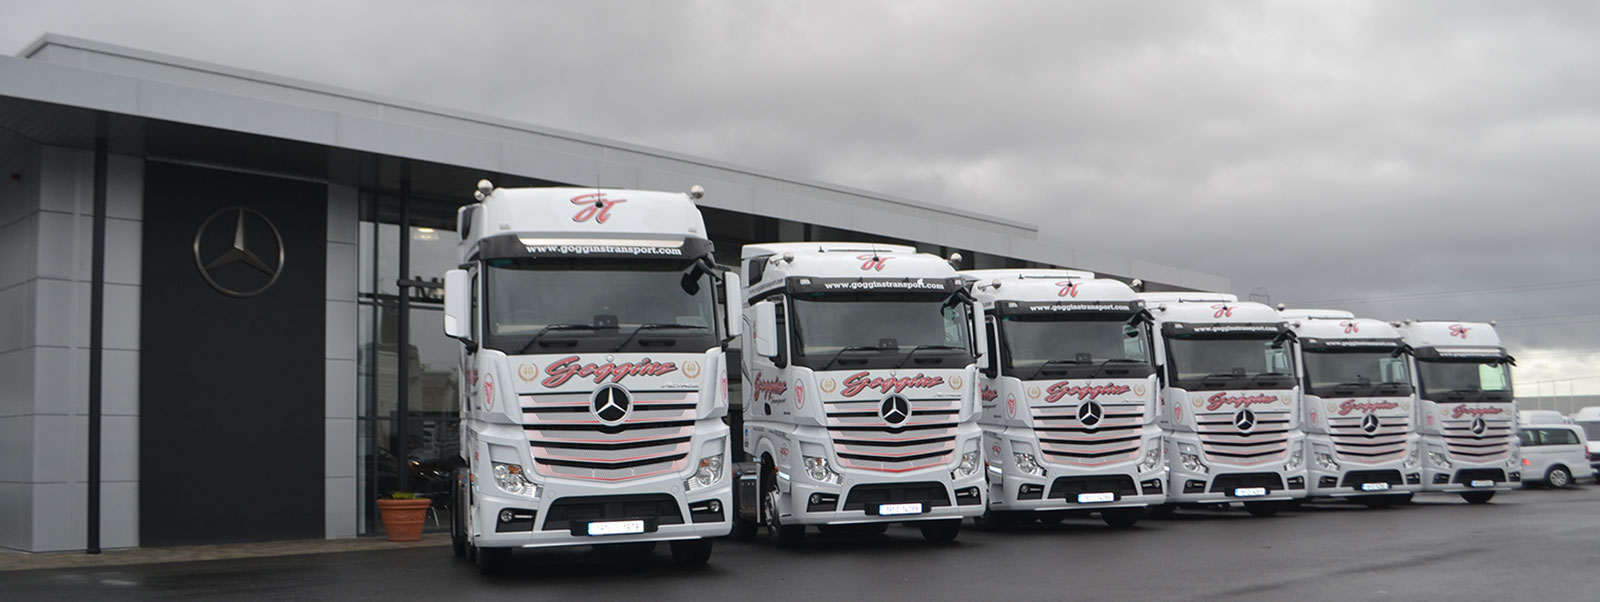 Providing Transport + Logistic Services for over 40 Years between Ireland, the UK + mainland Europe